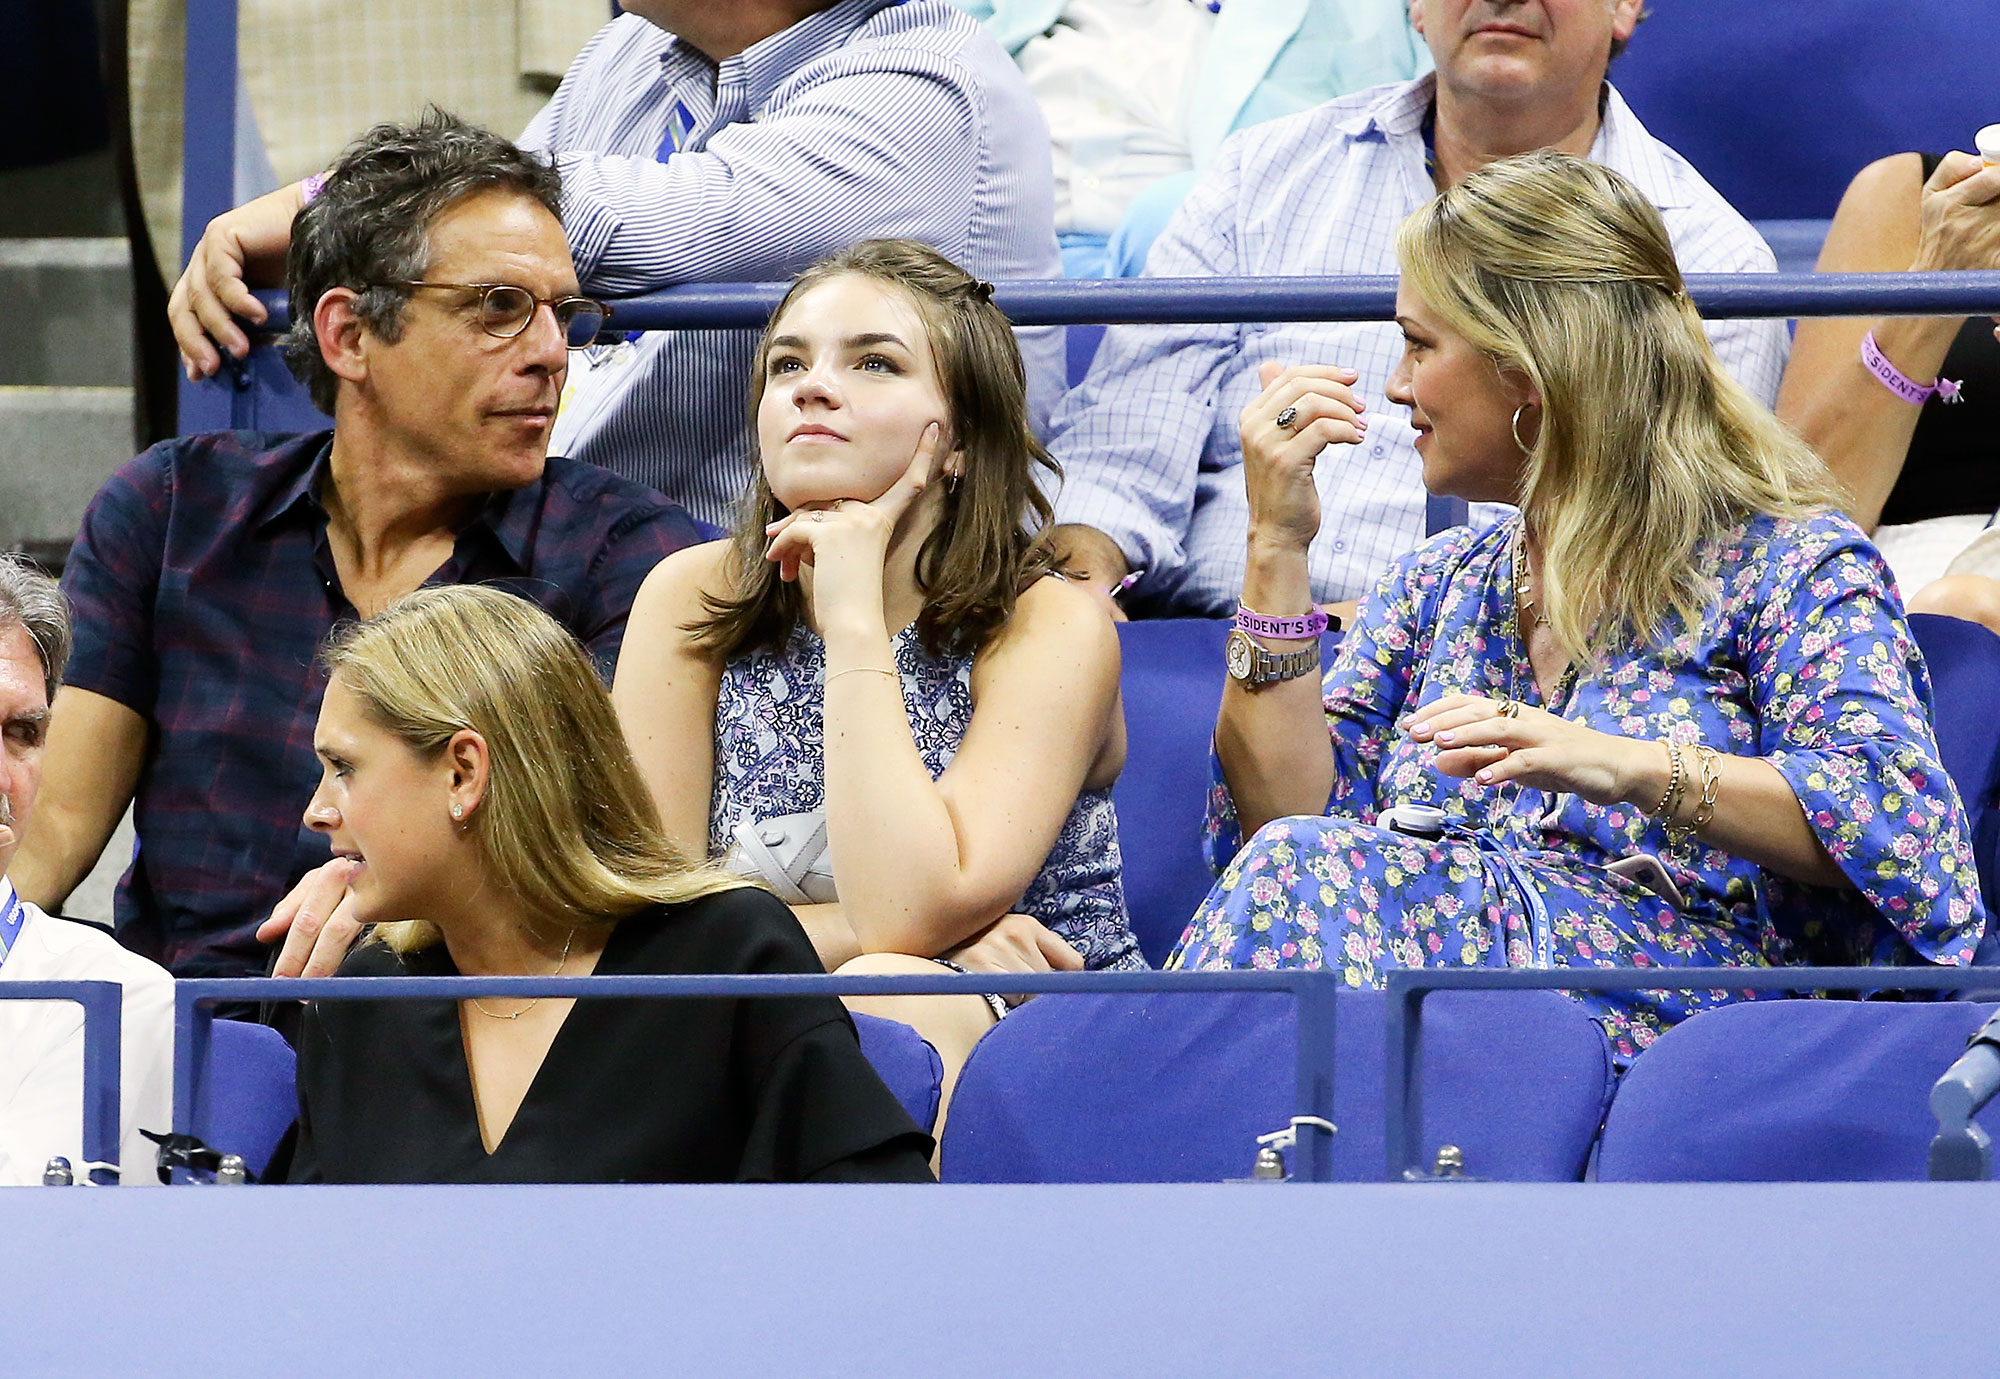 Ben Stiller Christine Taylor Ella Stiller Us Open 2018 - The estranged couple, who seem to remain friendly despite their May 2017 split , chatted as daughter Ella, 16, kept her eye on the August 29 match.